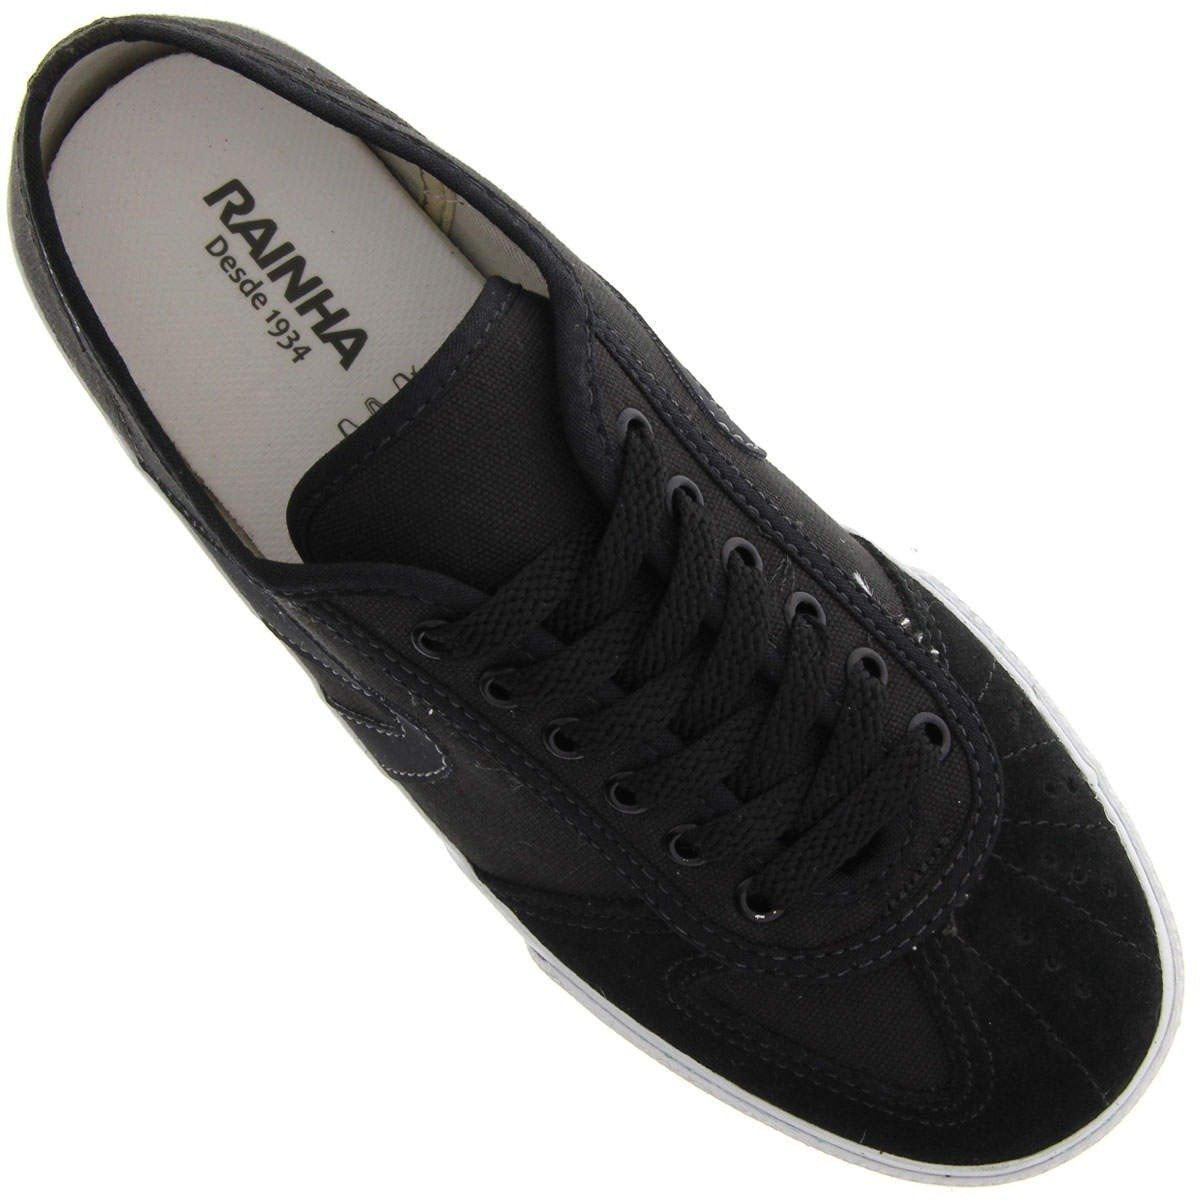 RAINHA Tennis Capoeira and Martial Arts Shoes - VL2500 - Black with Grey - ZumZum Capoeira Shop